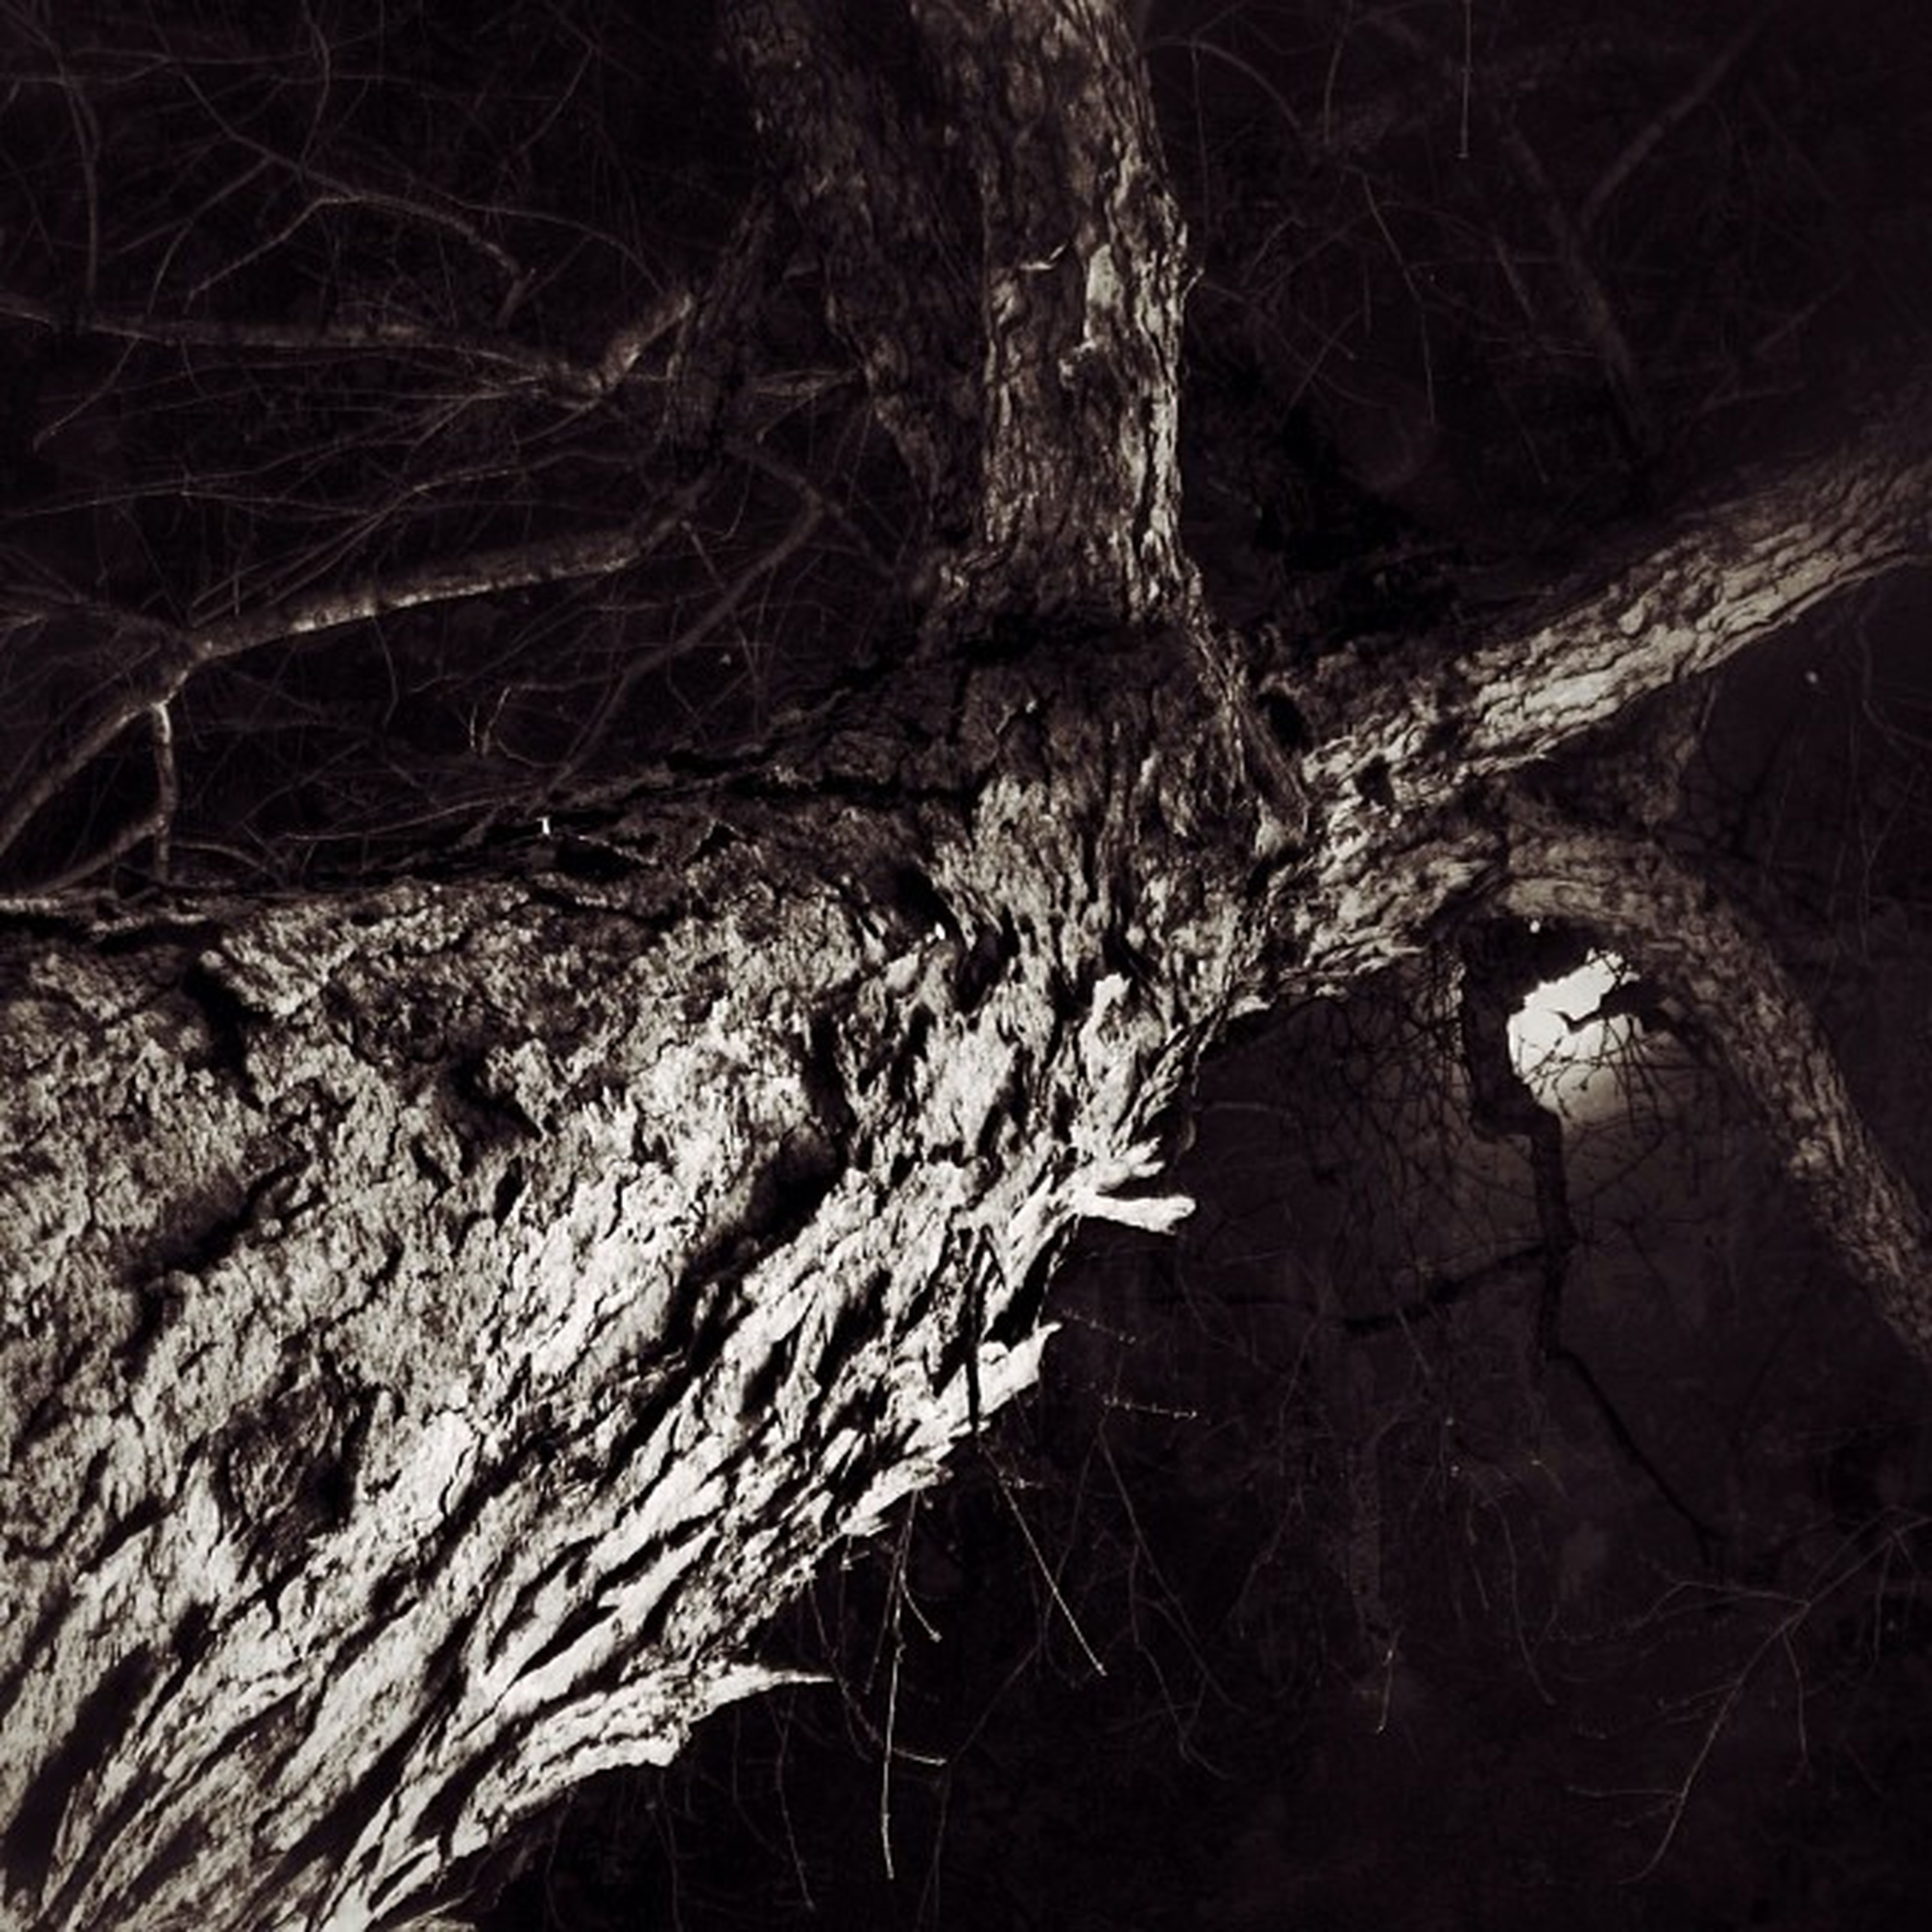 tree, tree trunk, forest, branch, night, nature, bare tree, tranquility, growth, close-up, textured, outdoors, woodland, dead plant, beauty in nature, no people, natural pattern, wood - material, dark, plant